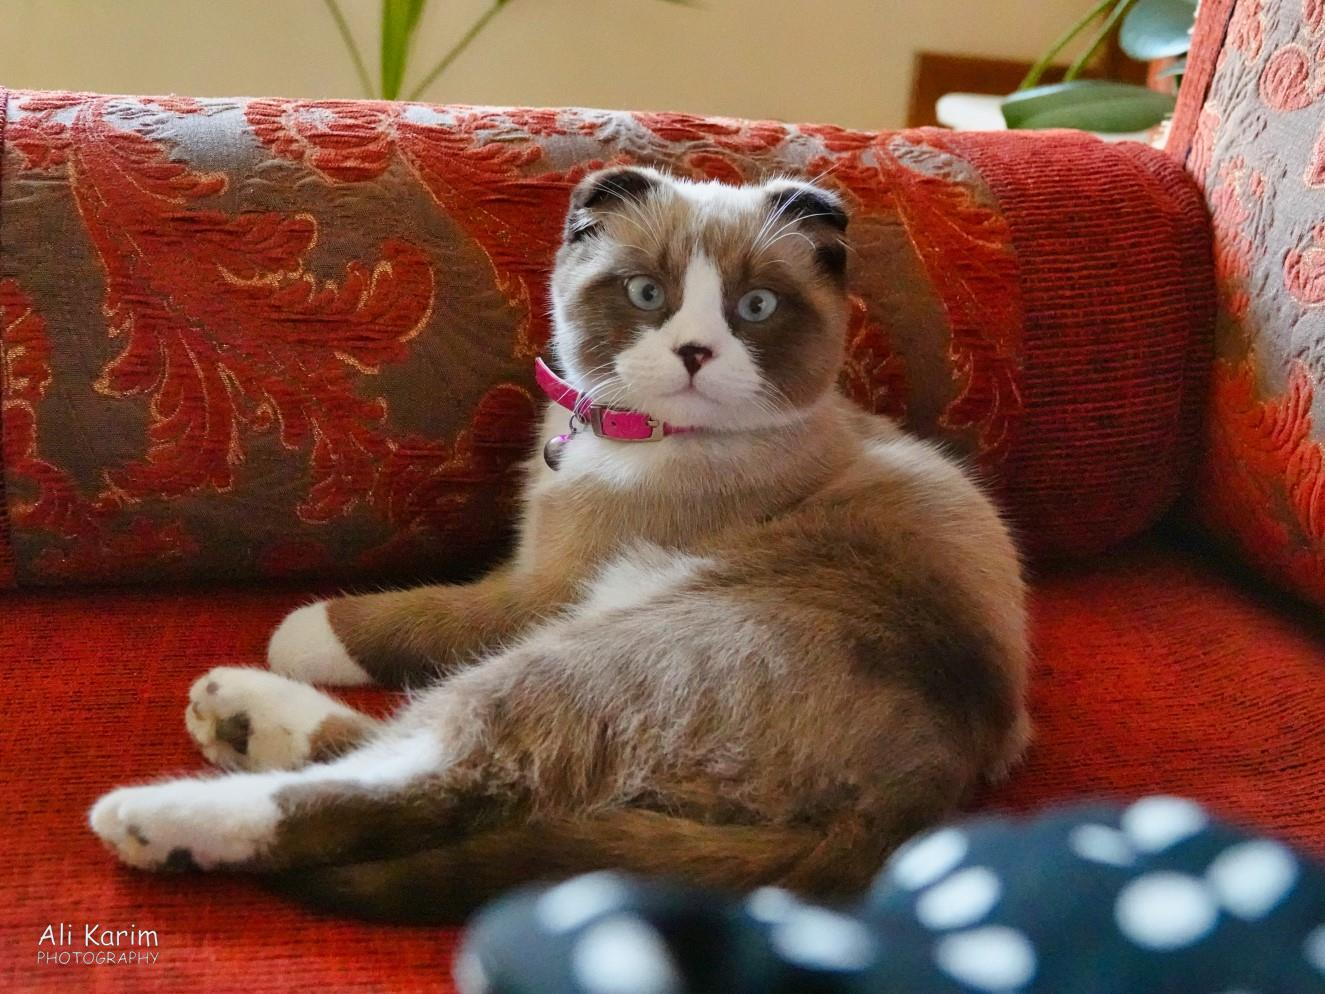 Bukhara, Oct 2019, The hotel's resident kitten was playful and energetic; but was a different family of cat to what we are familiar with; she was shorter, stouter and did not have long pointy ears. Anyone know this breed?